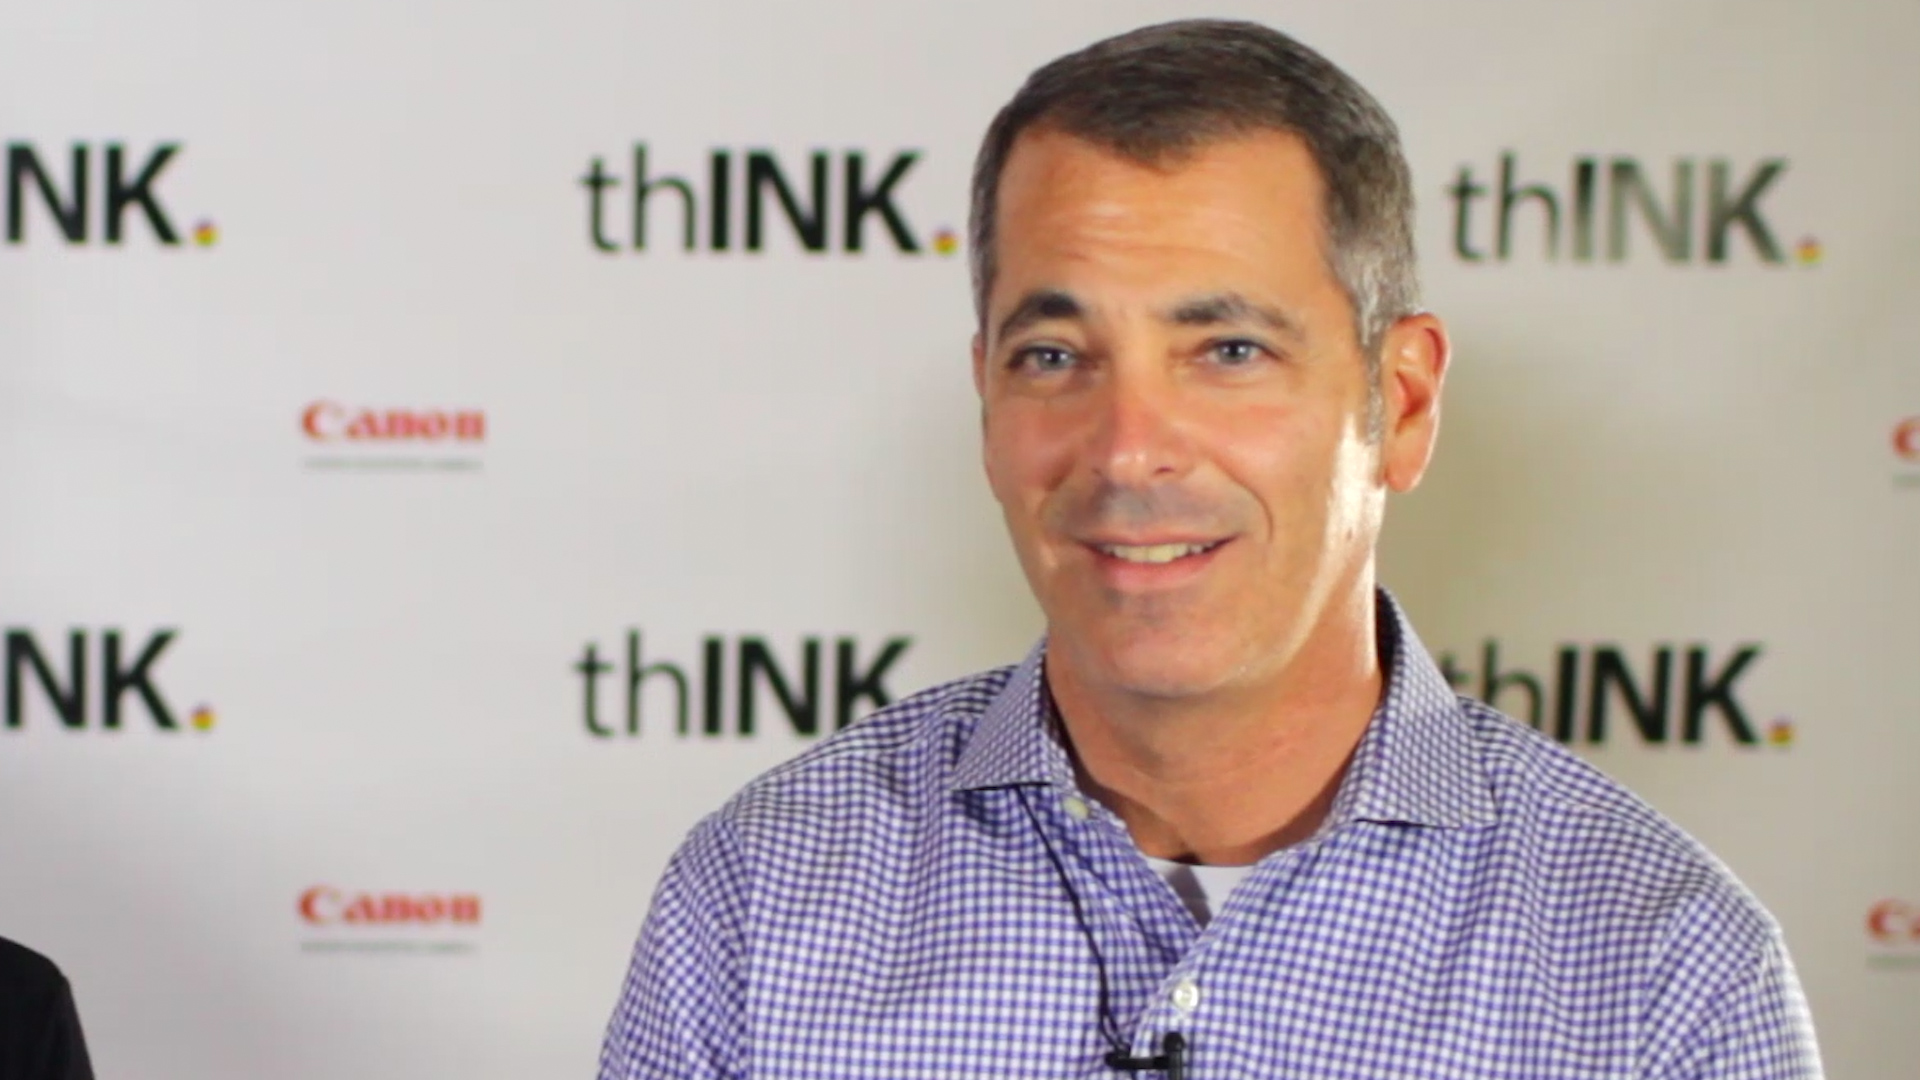 Video preview: Canon thINK: The importance of community in promoting industry growth